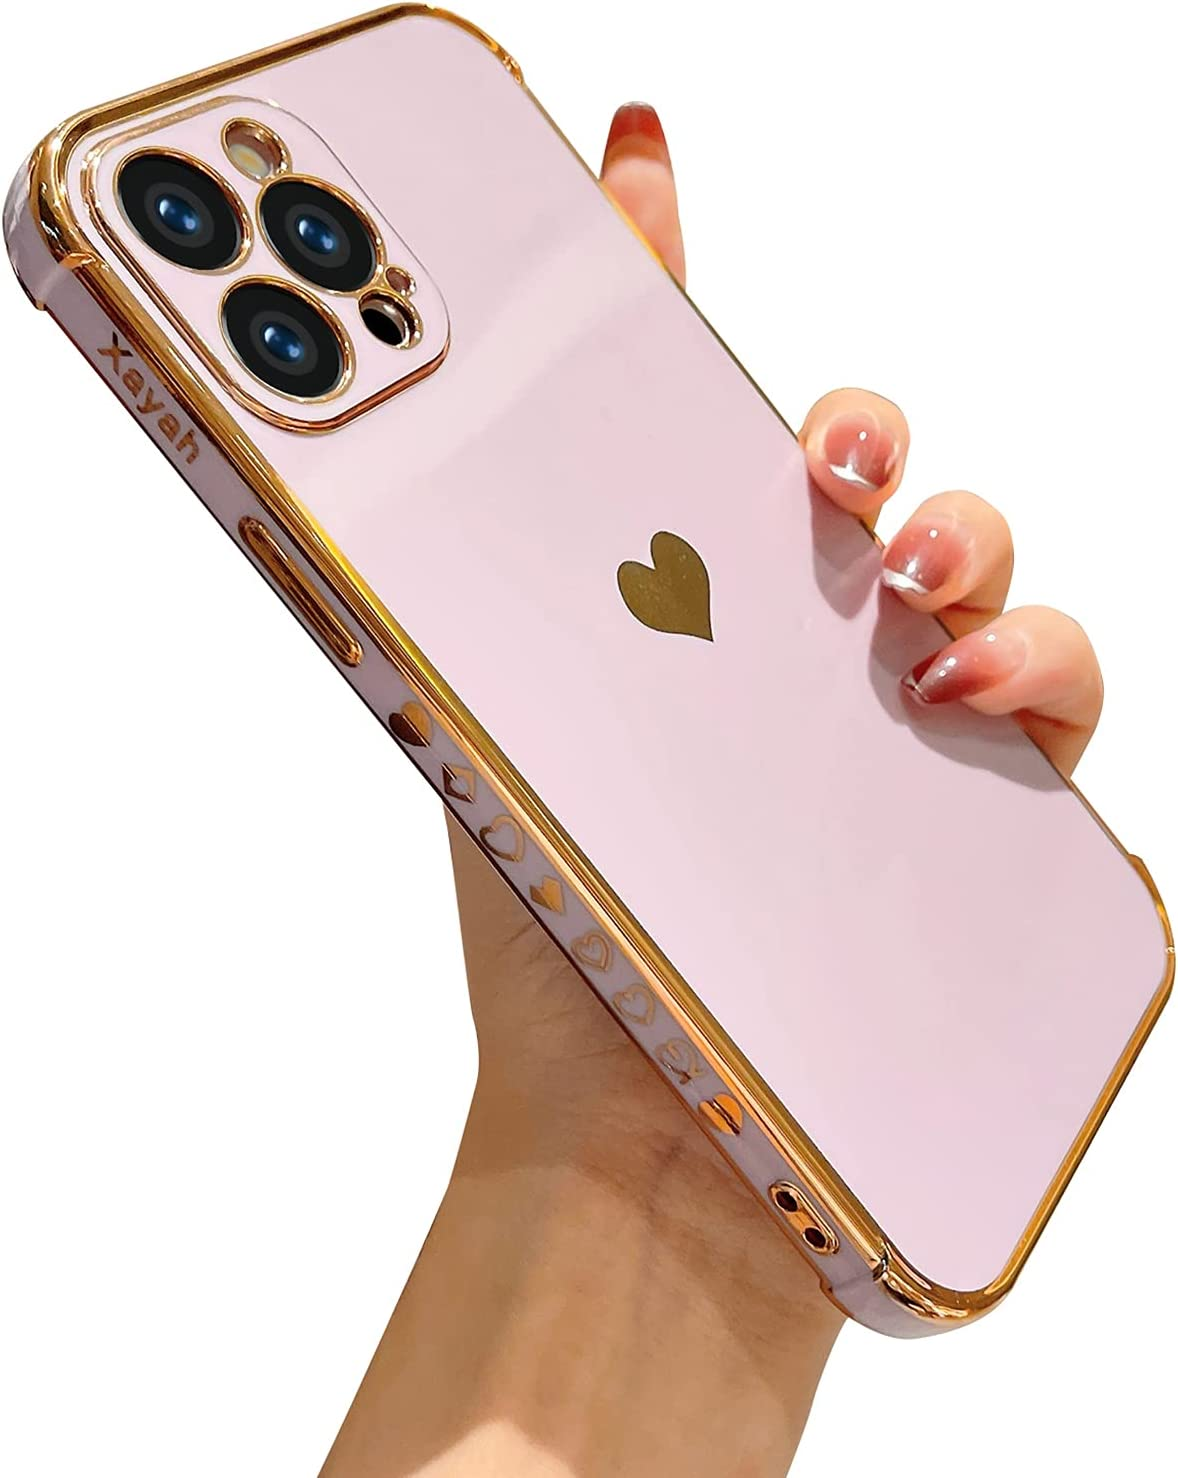 XAYAH Compatible with iPhone 12 Pro Max Electroplated Case Women Cute Heart Pattern Camera Lens Protection Soft TPU Silicone Protective Bumper Phone Cases for iPhone 12 Pro Max 6.7 inch (D-Purple)